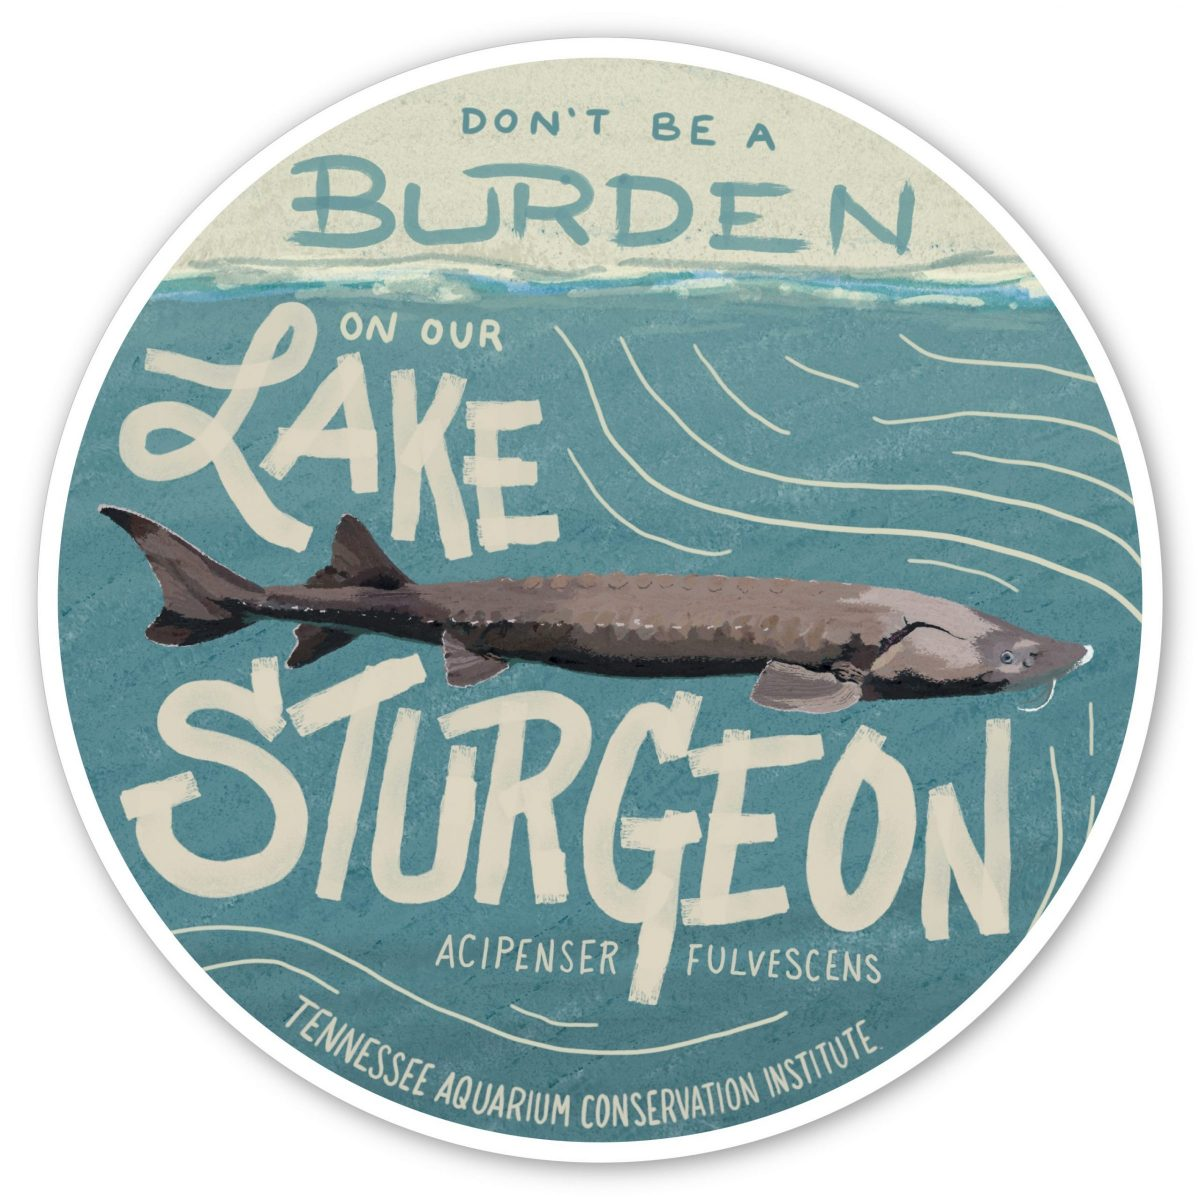 illustration of a Lake Sturgeon with wording Don't be a burden on the Lake Sturgeon